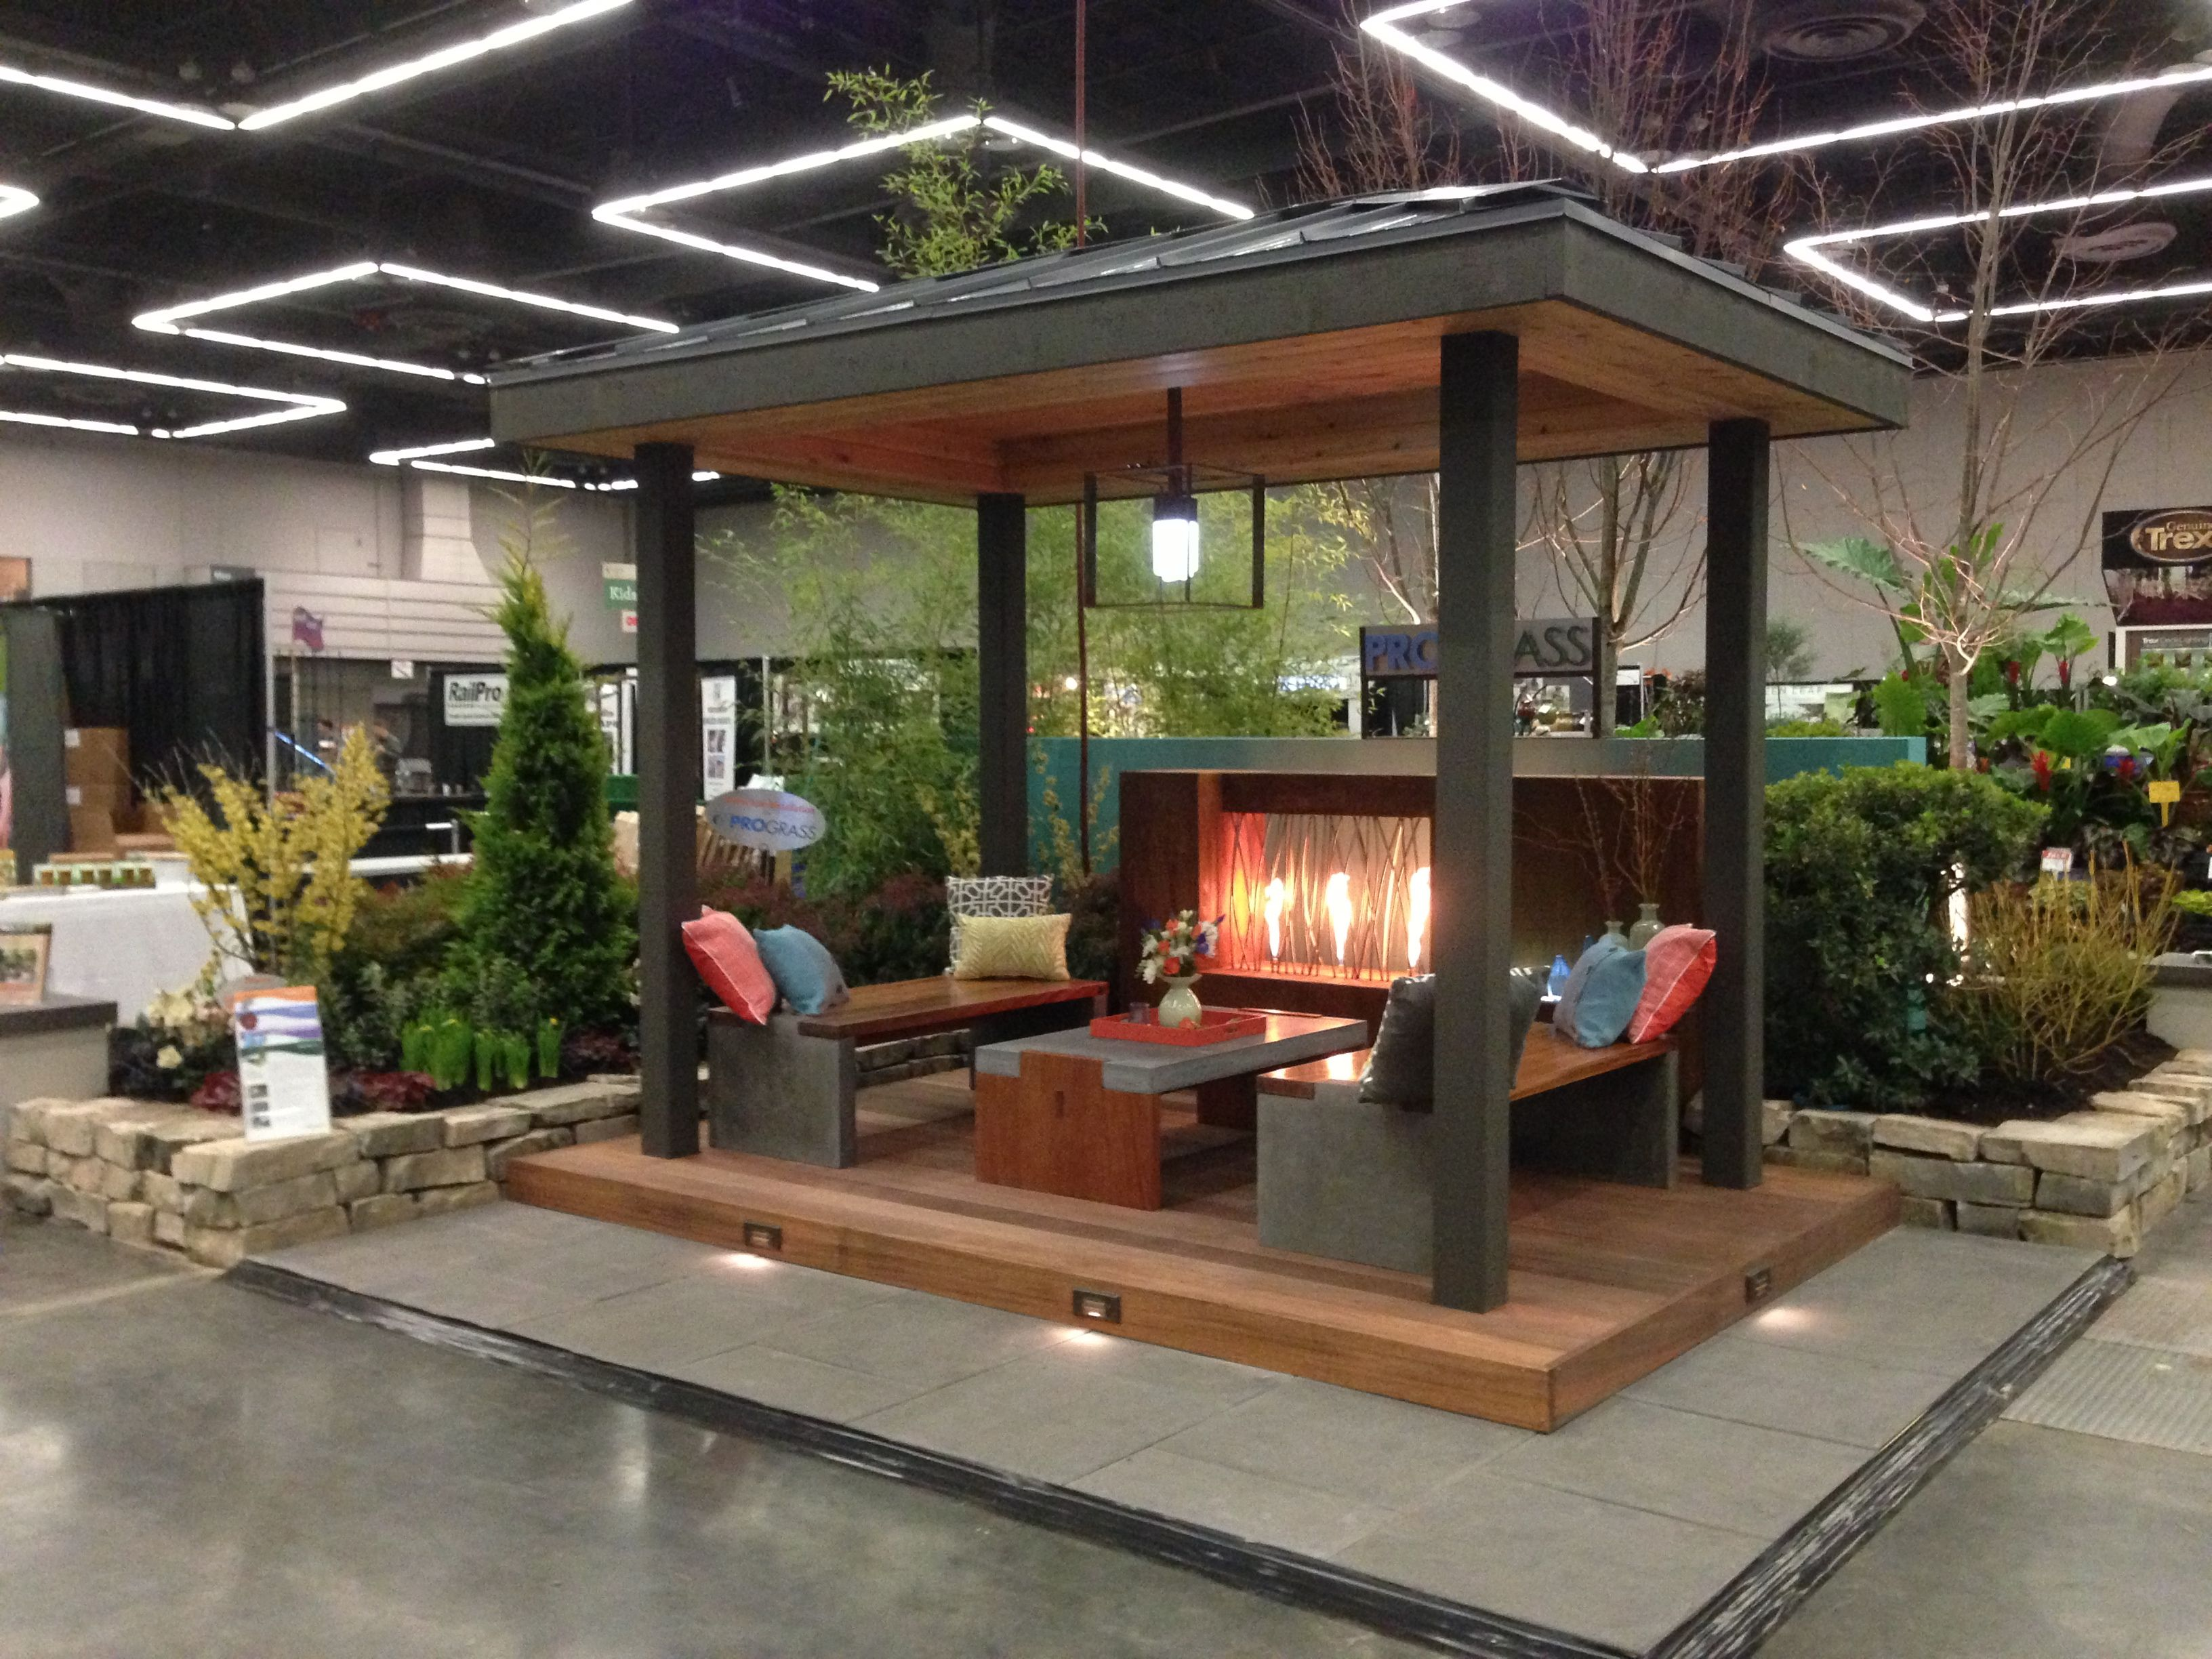 Cozy Conversation Space At The Yard Garden And Patio Show 2013